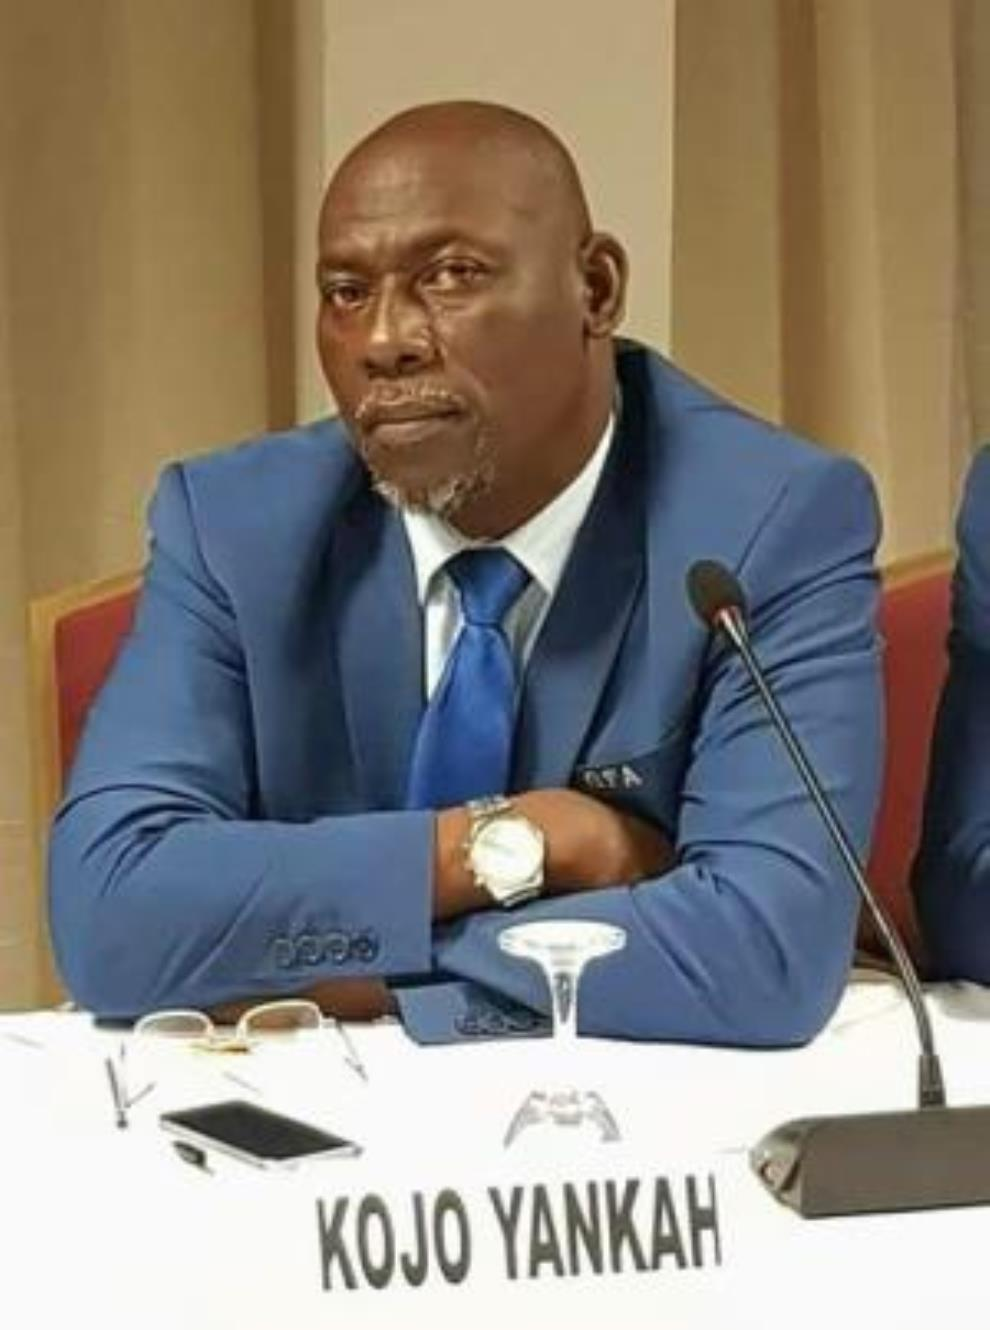 FIFA/CAF Liaison Team Have No Relevance - Kojo Yankah